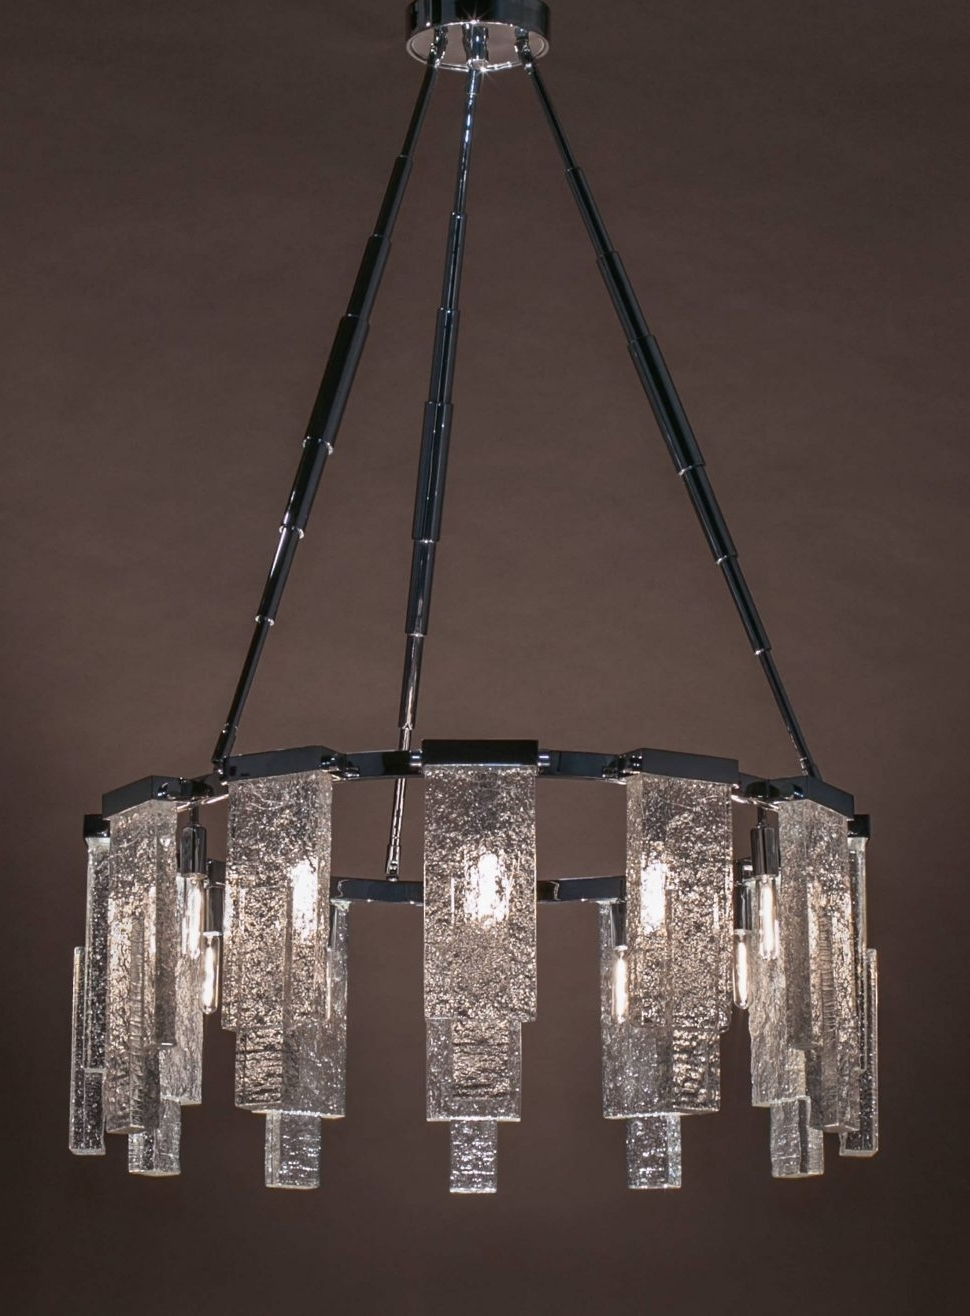 2019 Chandelier : Large Chandeliers Cool Chandeliers Pendant Ceiling Regarding Modern Large Chandelier (View 16 of 20)